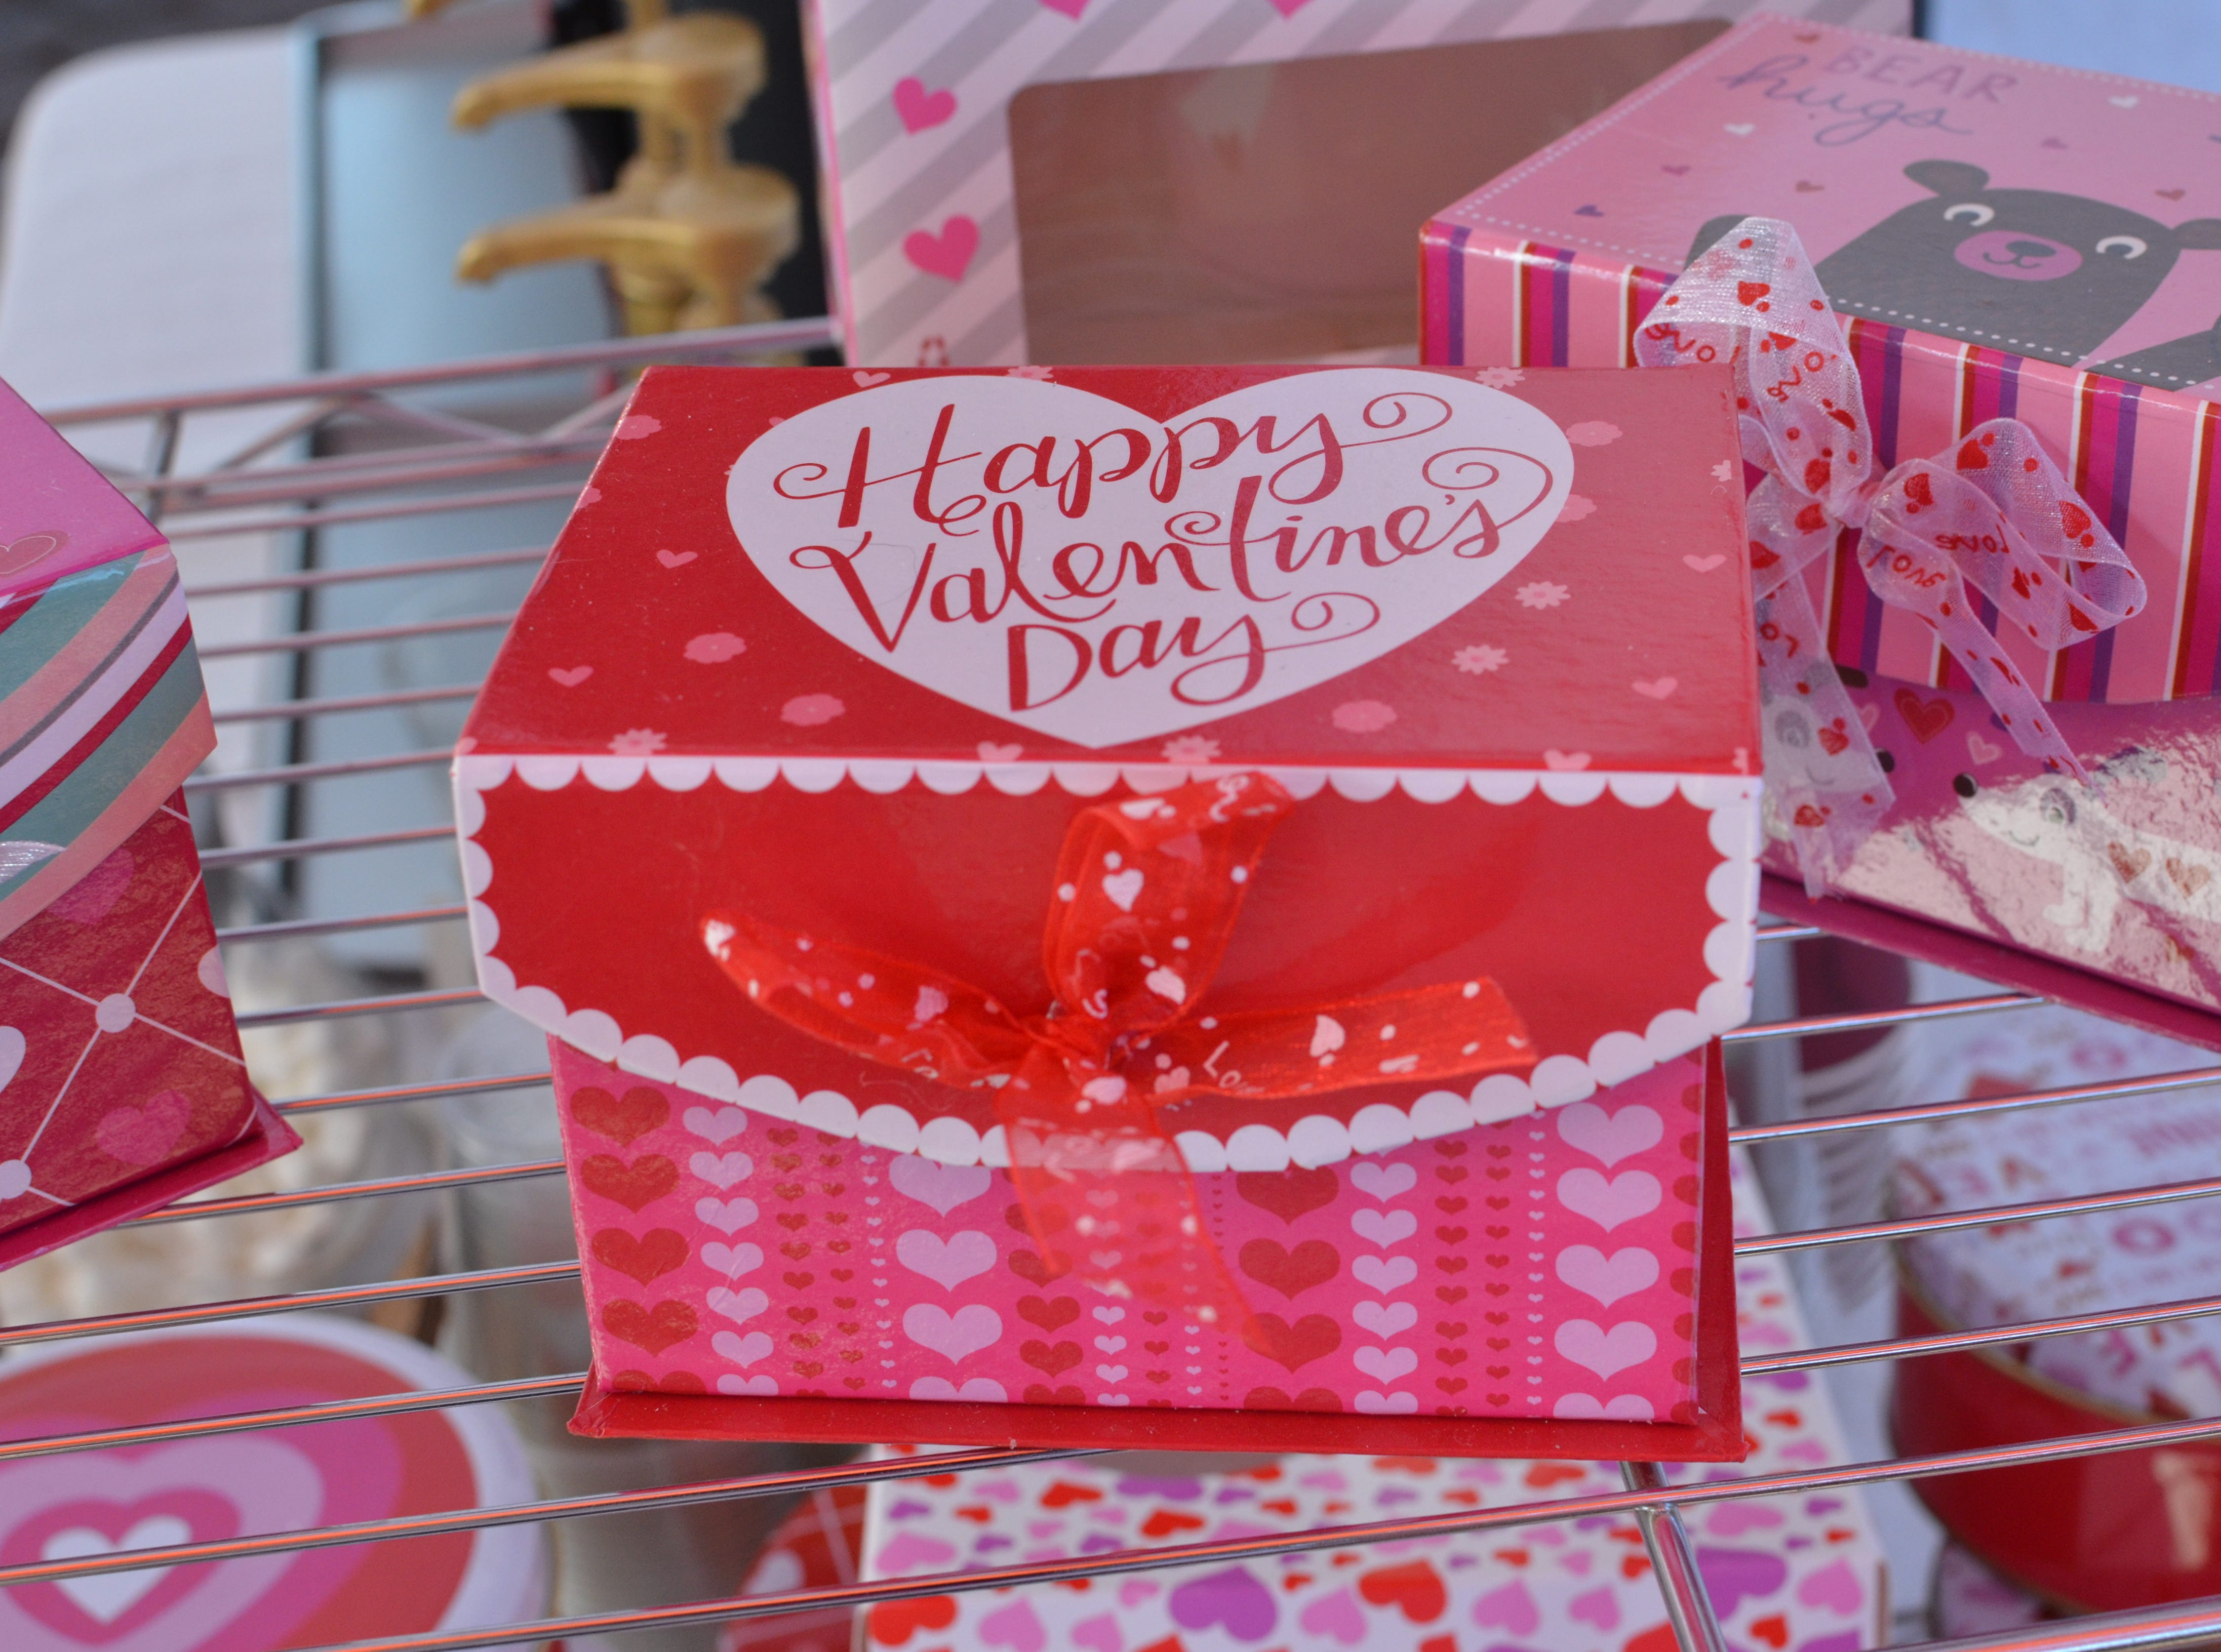 During the Art of Chocolate A'Fair, attendees can purchase Valentine's Day gifts.